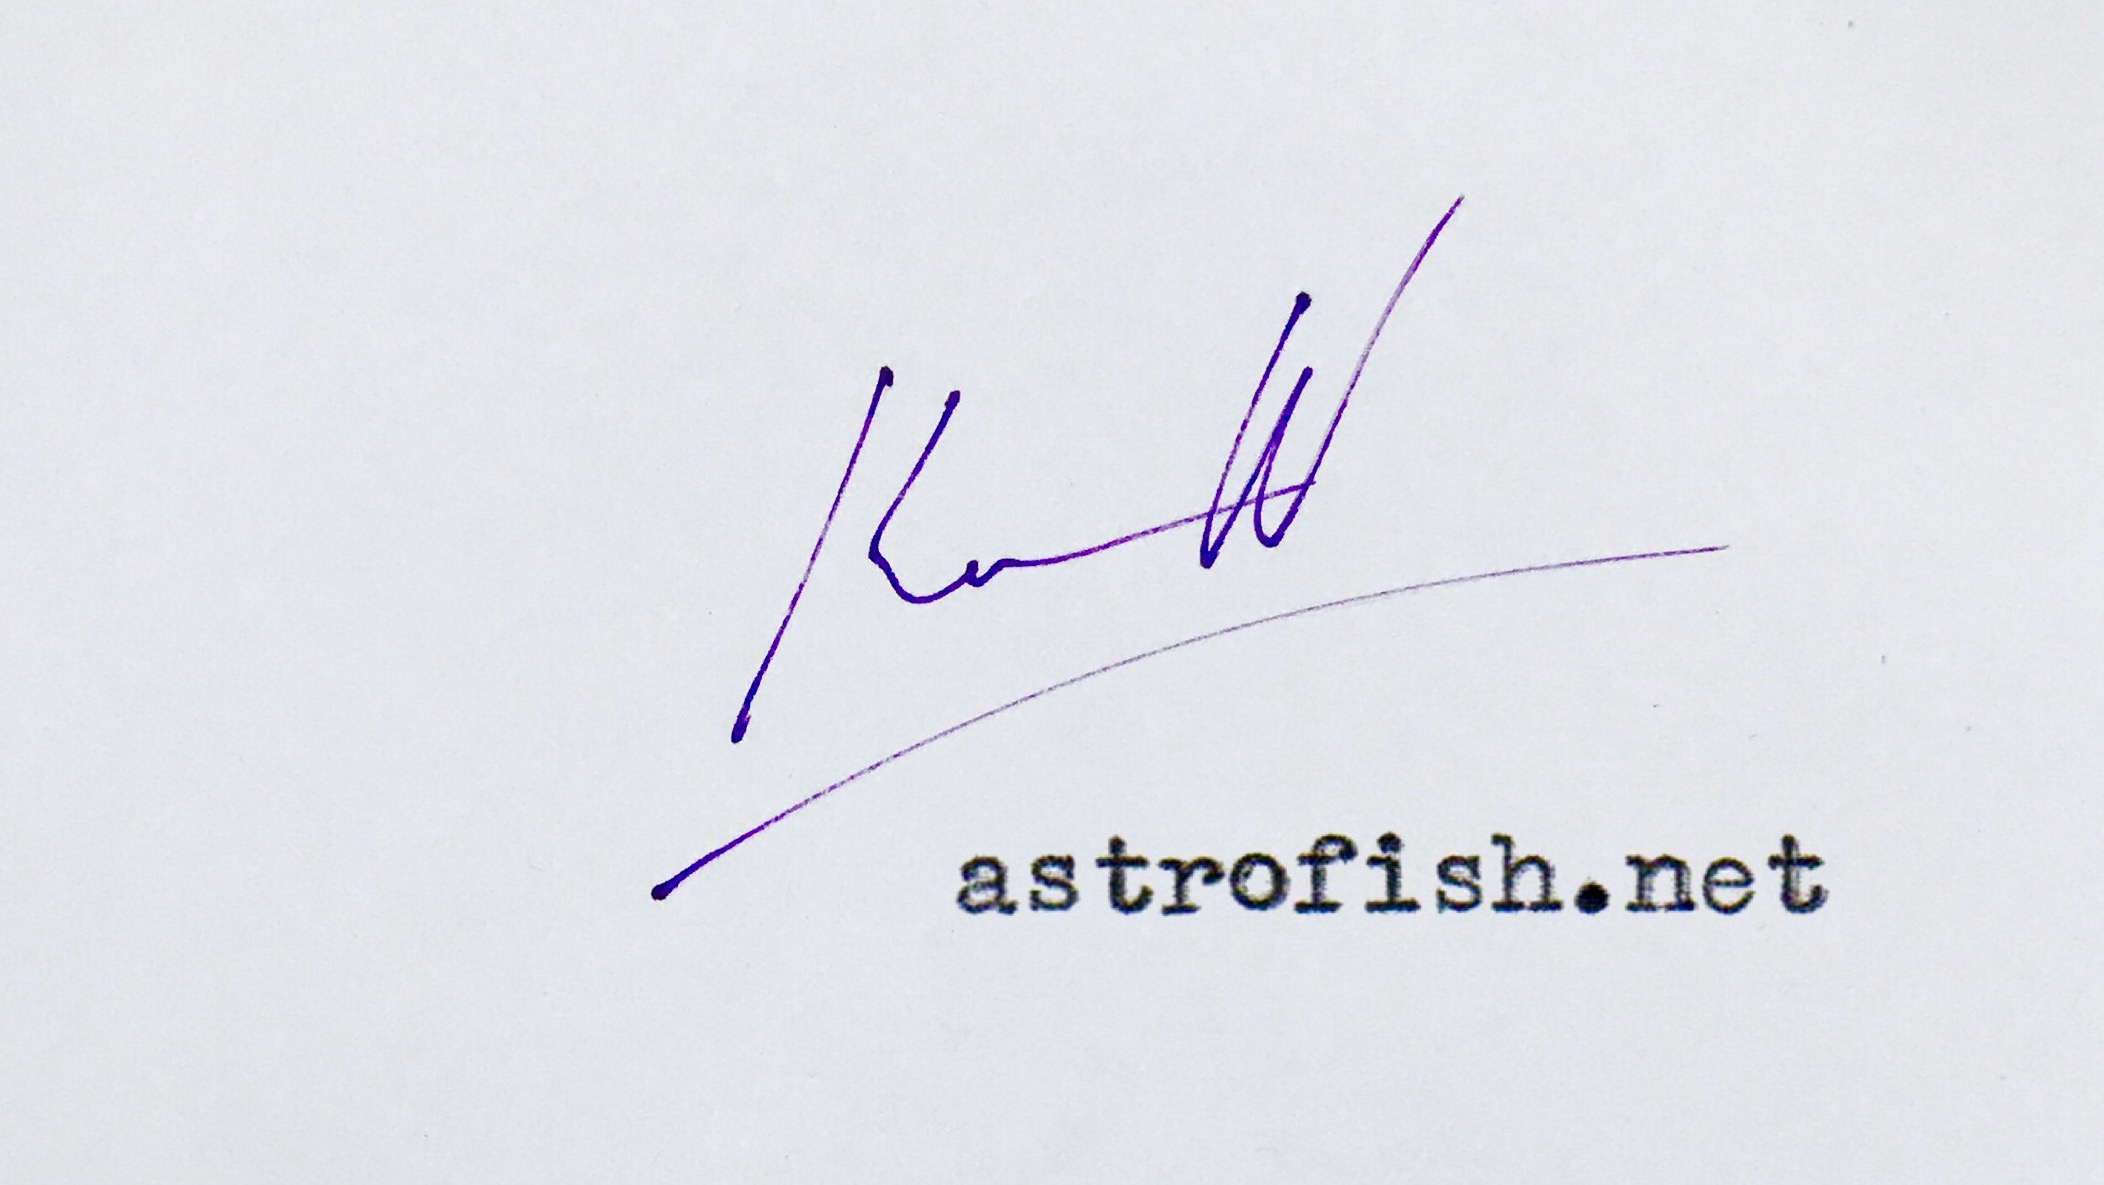 astrofish.net logo for Stripe